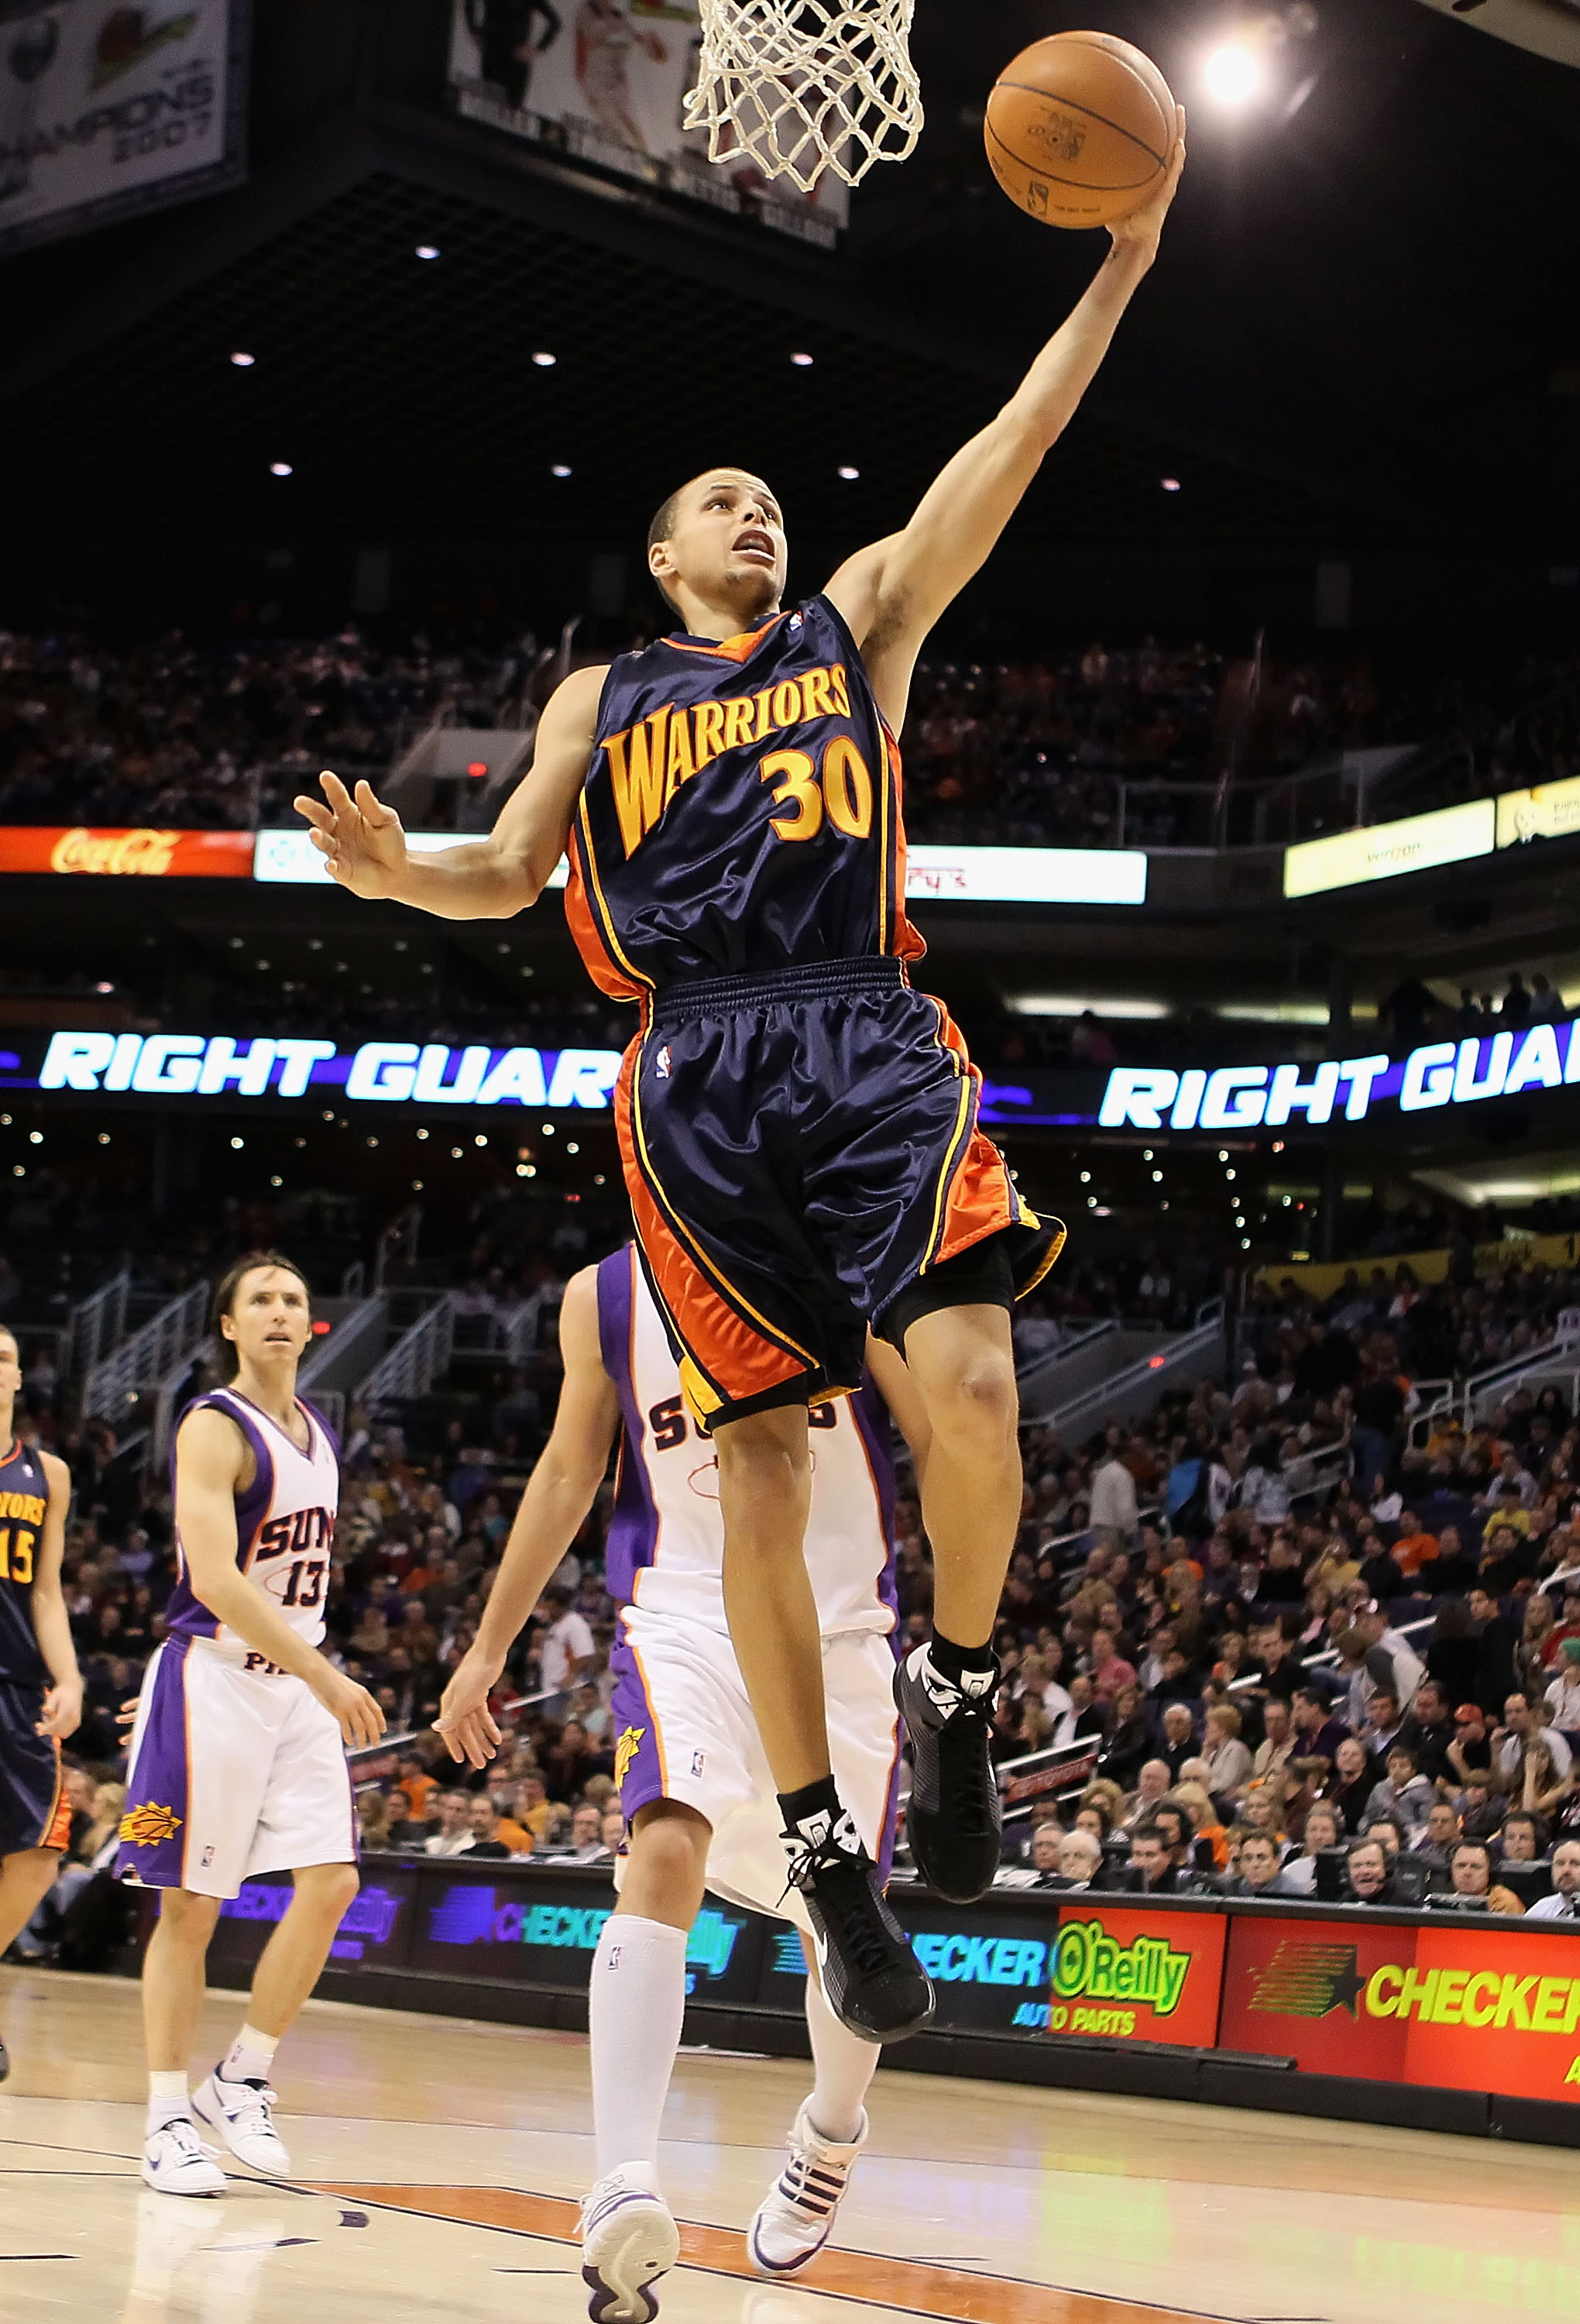 PHOENIX - JANUARY 23:  Stephen Curry #30 of the Golden State Warriors lays up a shot against the Phoenix Suns during the NBA game at US Airways Center on January 23, 2010 in Phoenix, Arizona. NOTE TO USER: User expressly acknowledges and agrees that, by d